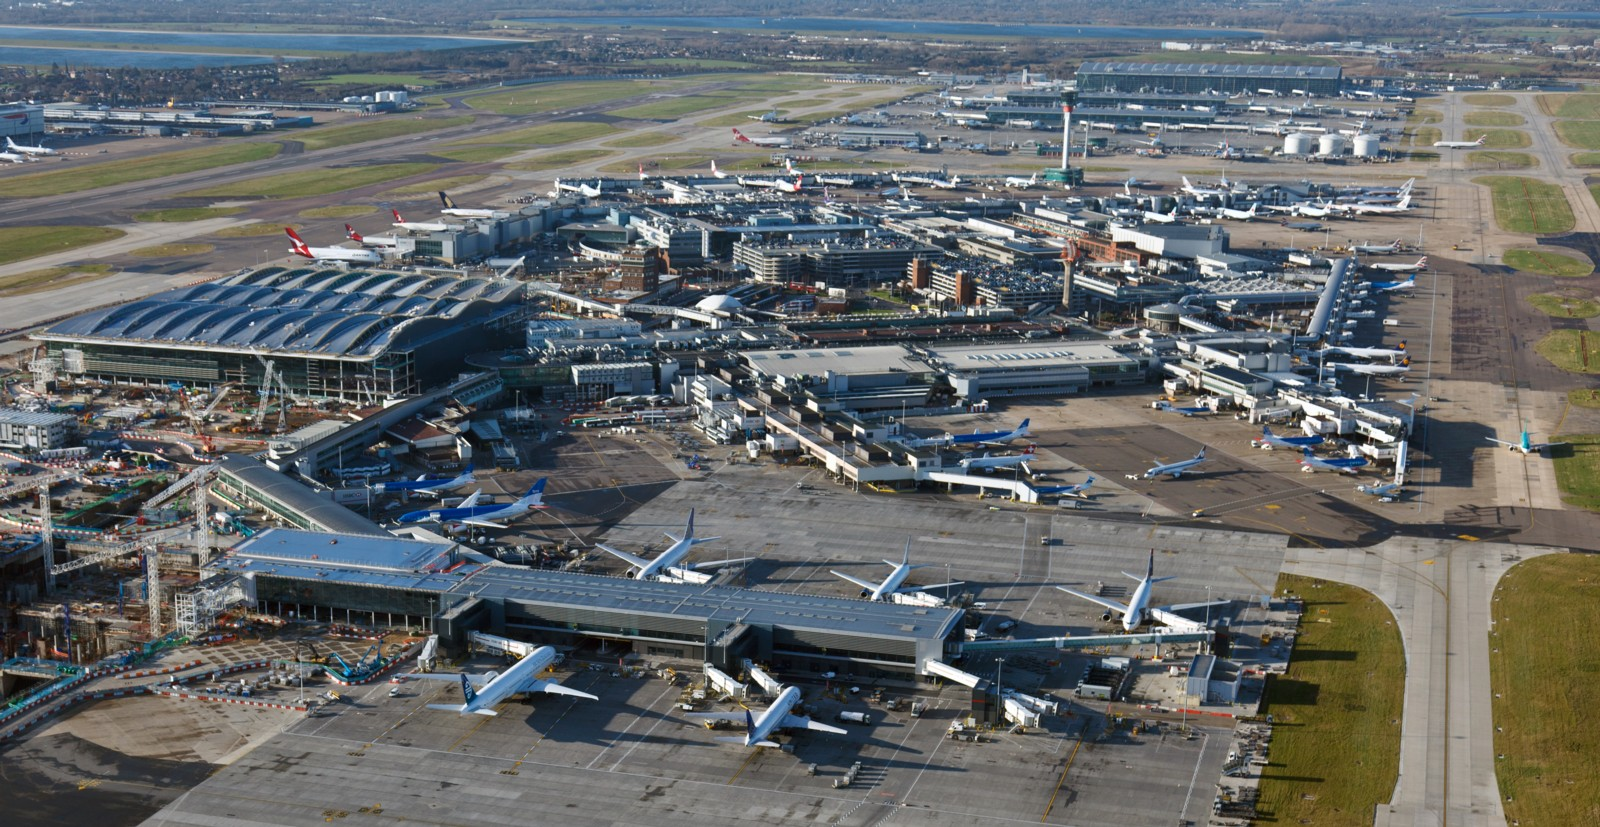 Schiphol, Paris CDG and Frankfurt Airports recover at a much quicker pace than London Heathrow - AIRLIVE